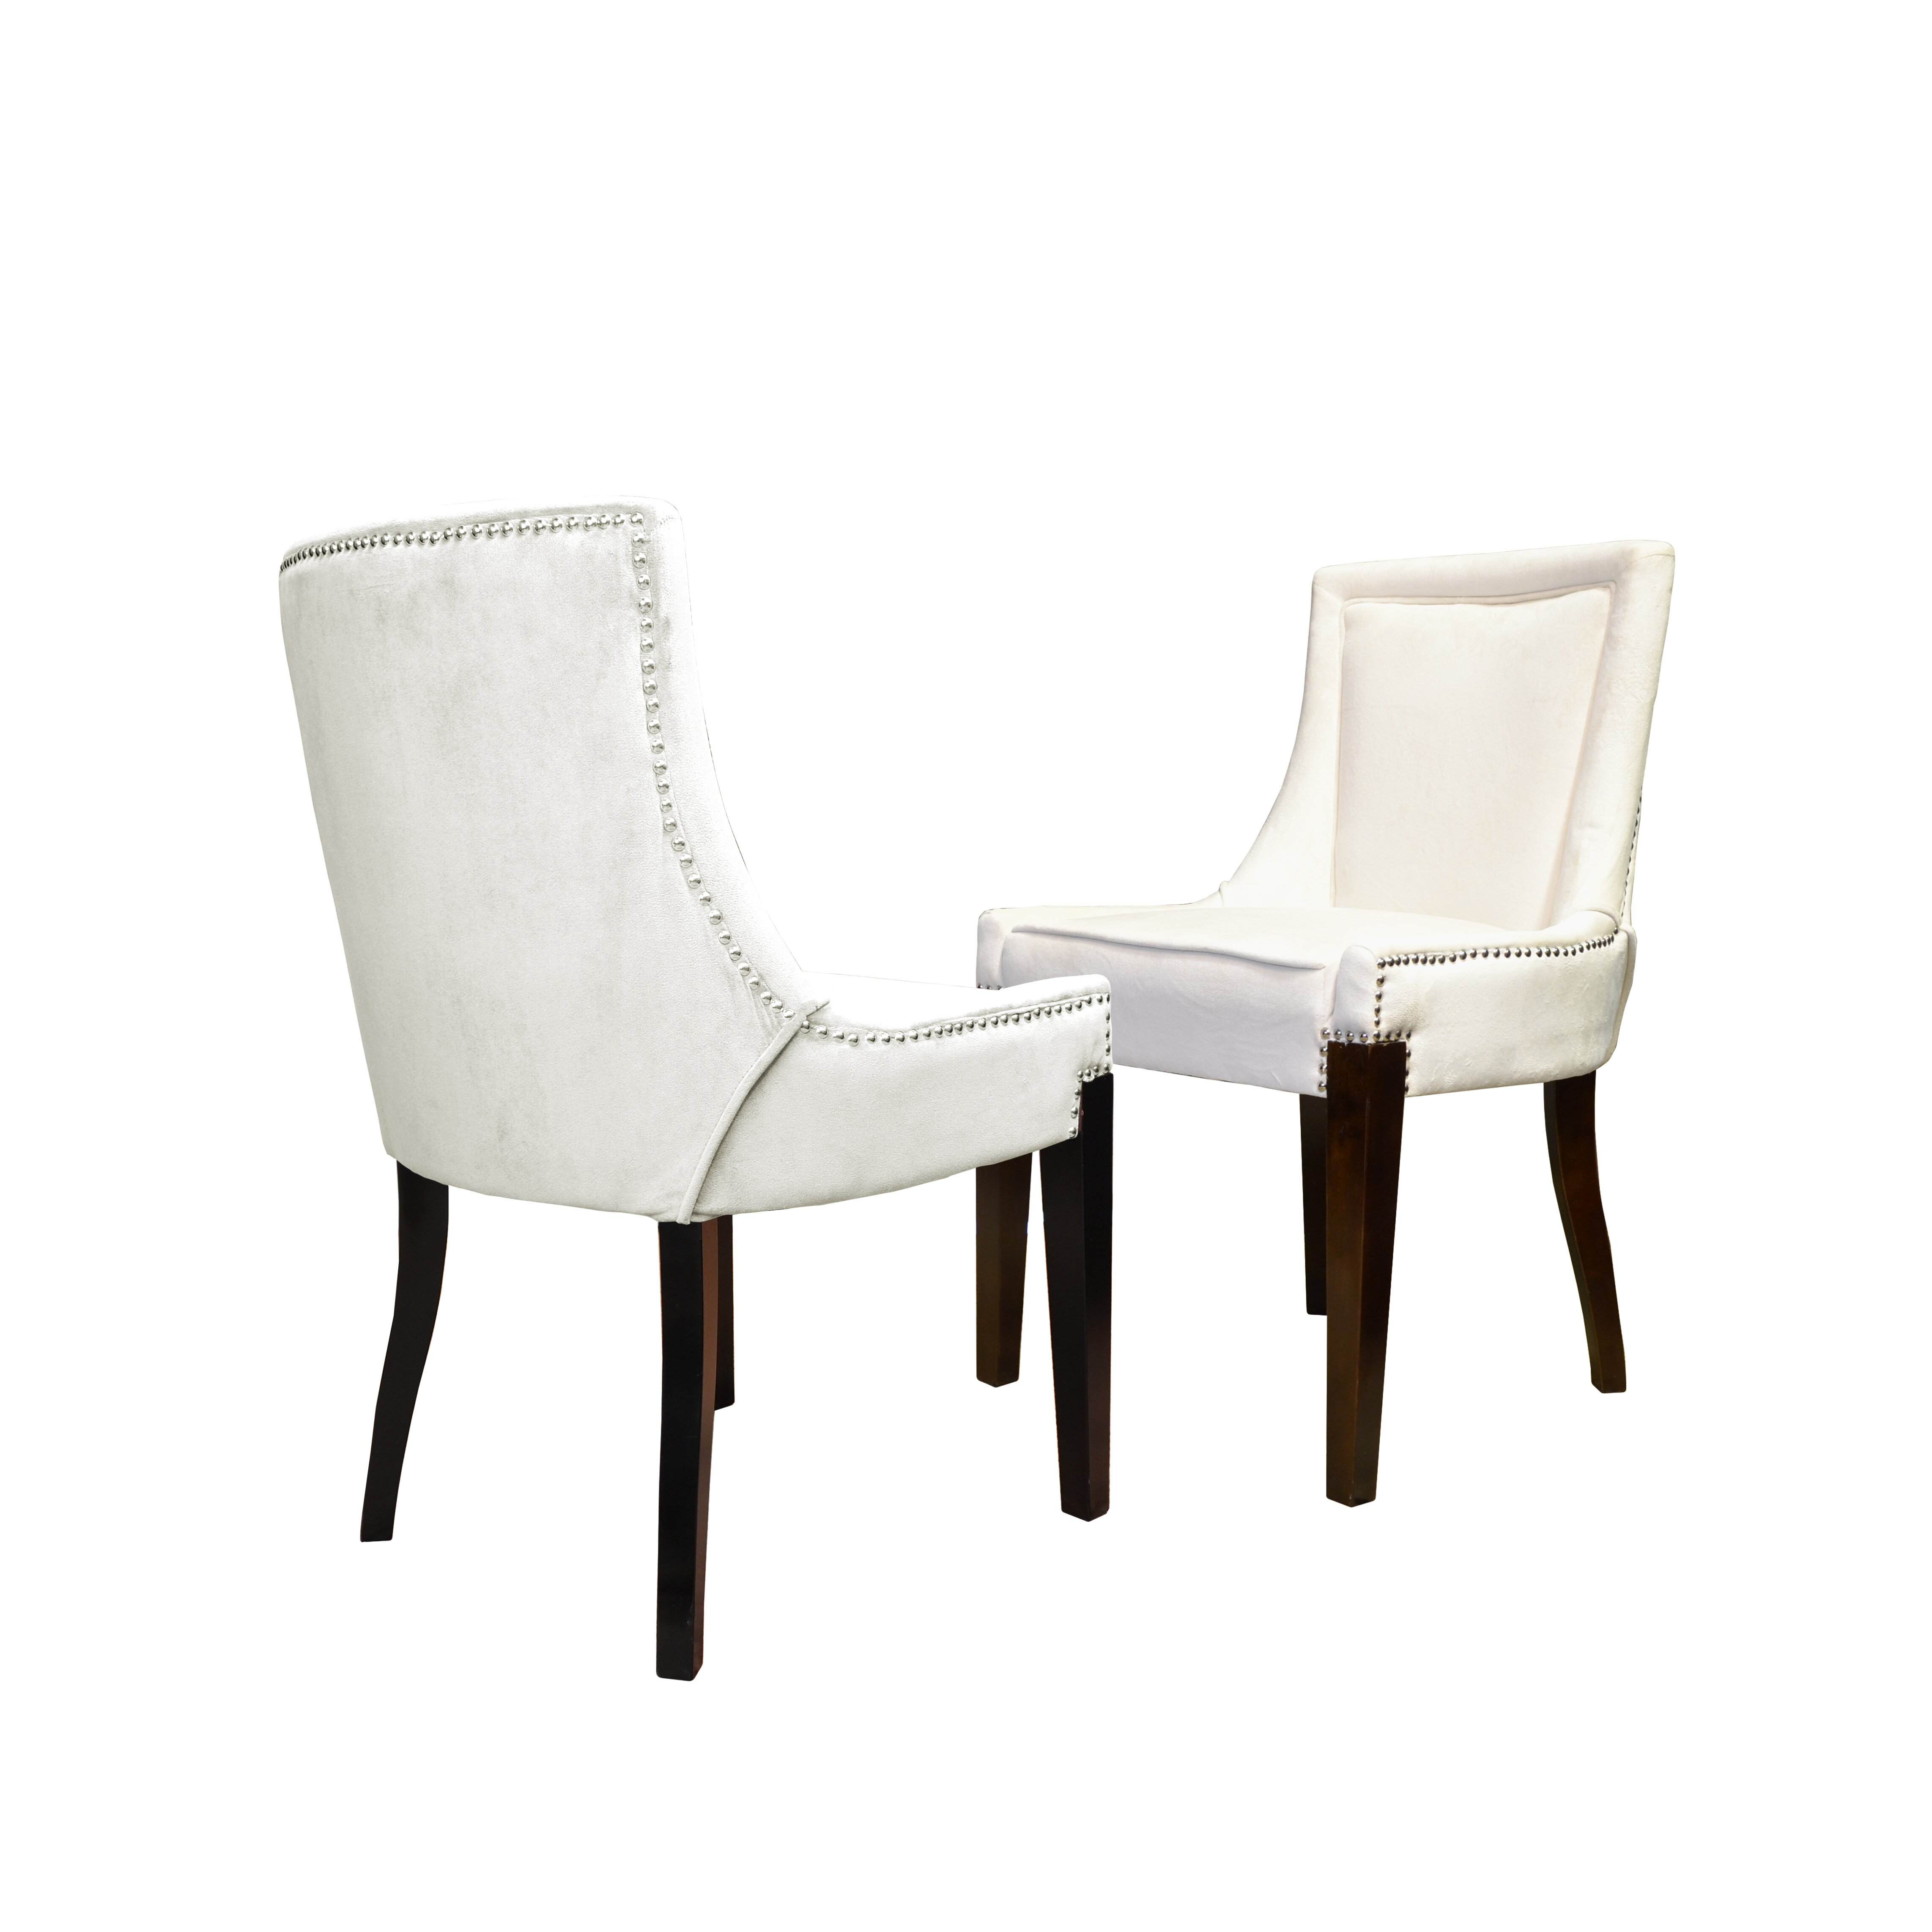 Hd Couture Giselle Castalina Side Chair Wayfair